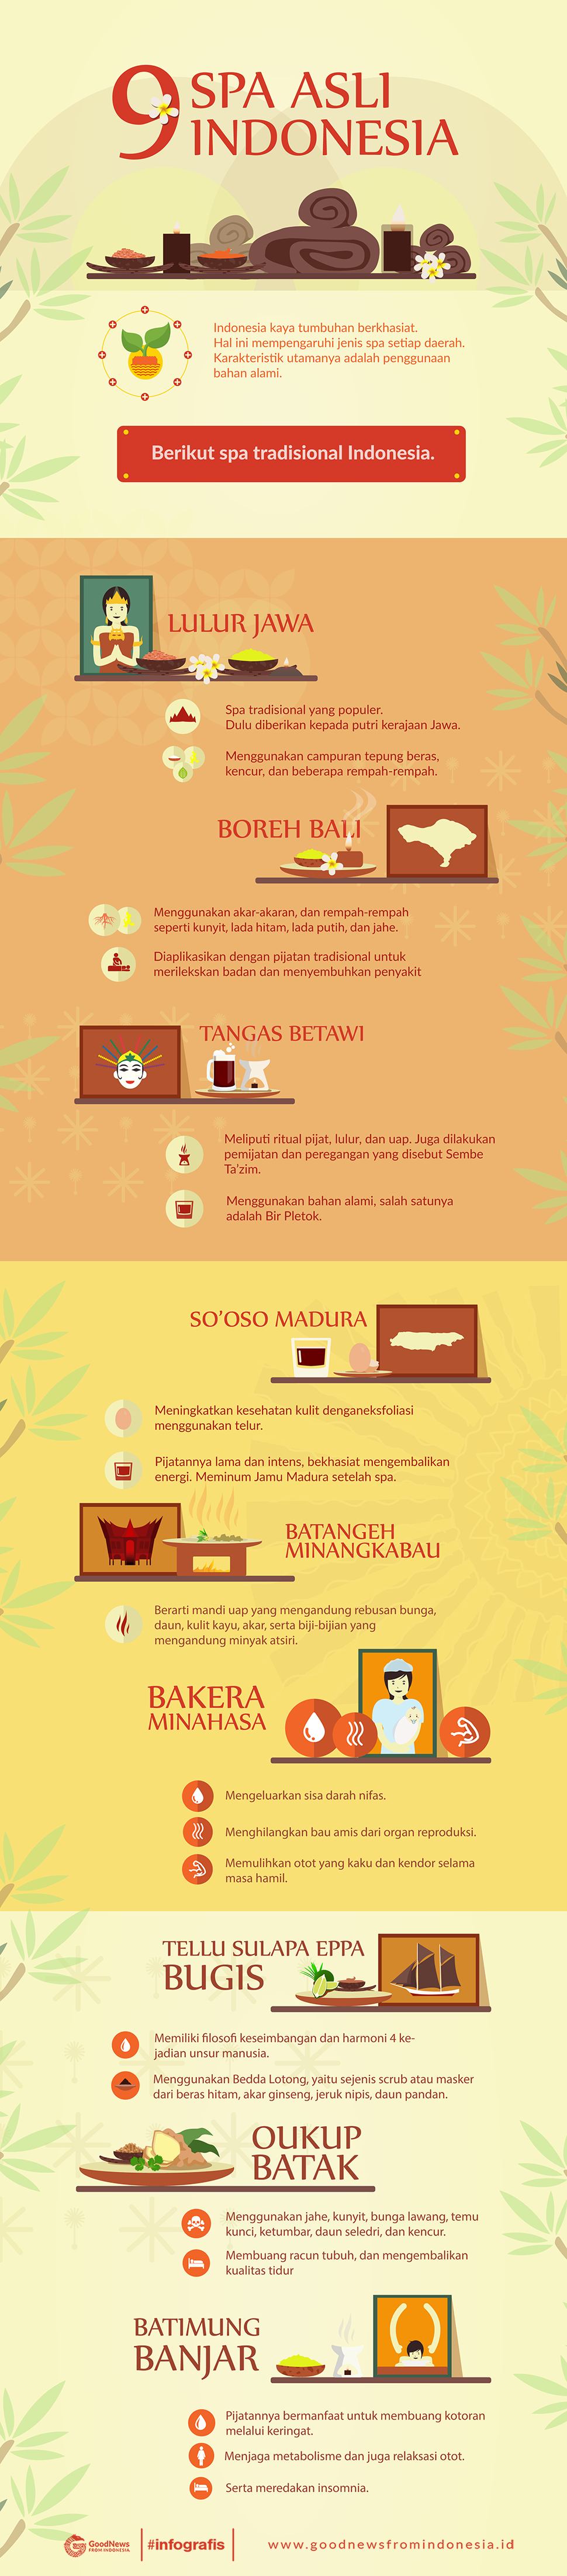 9 Spa Asli Indonesia